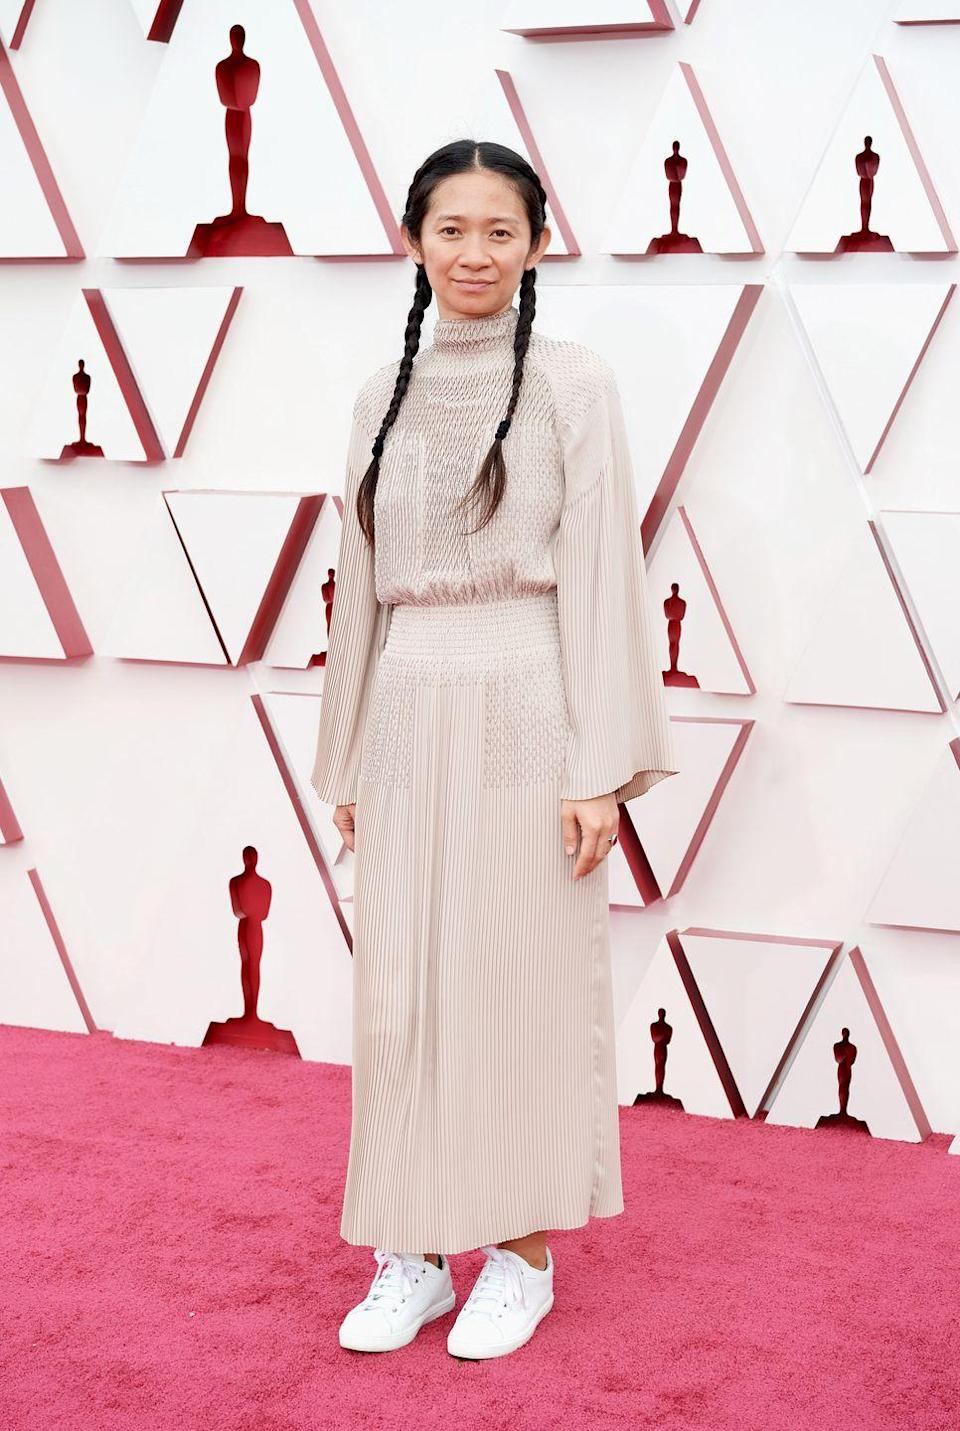 <p>We were so distracted by the Nomadland director's stunning cream-coloured dress that we almost didn't see the fact she styled her look with box-white trainers. Comfortable and chic, what more could you want? </p><p>Later in the evening, the director became the first woman of colour, and the second woman ever, to win the Best Director Oscar. Go, Chloé!</p>